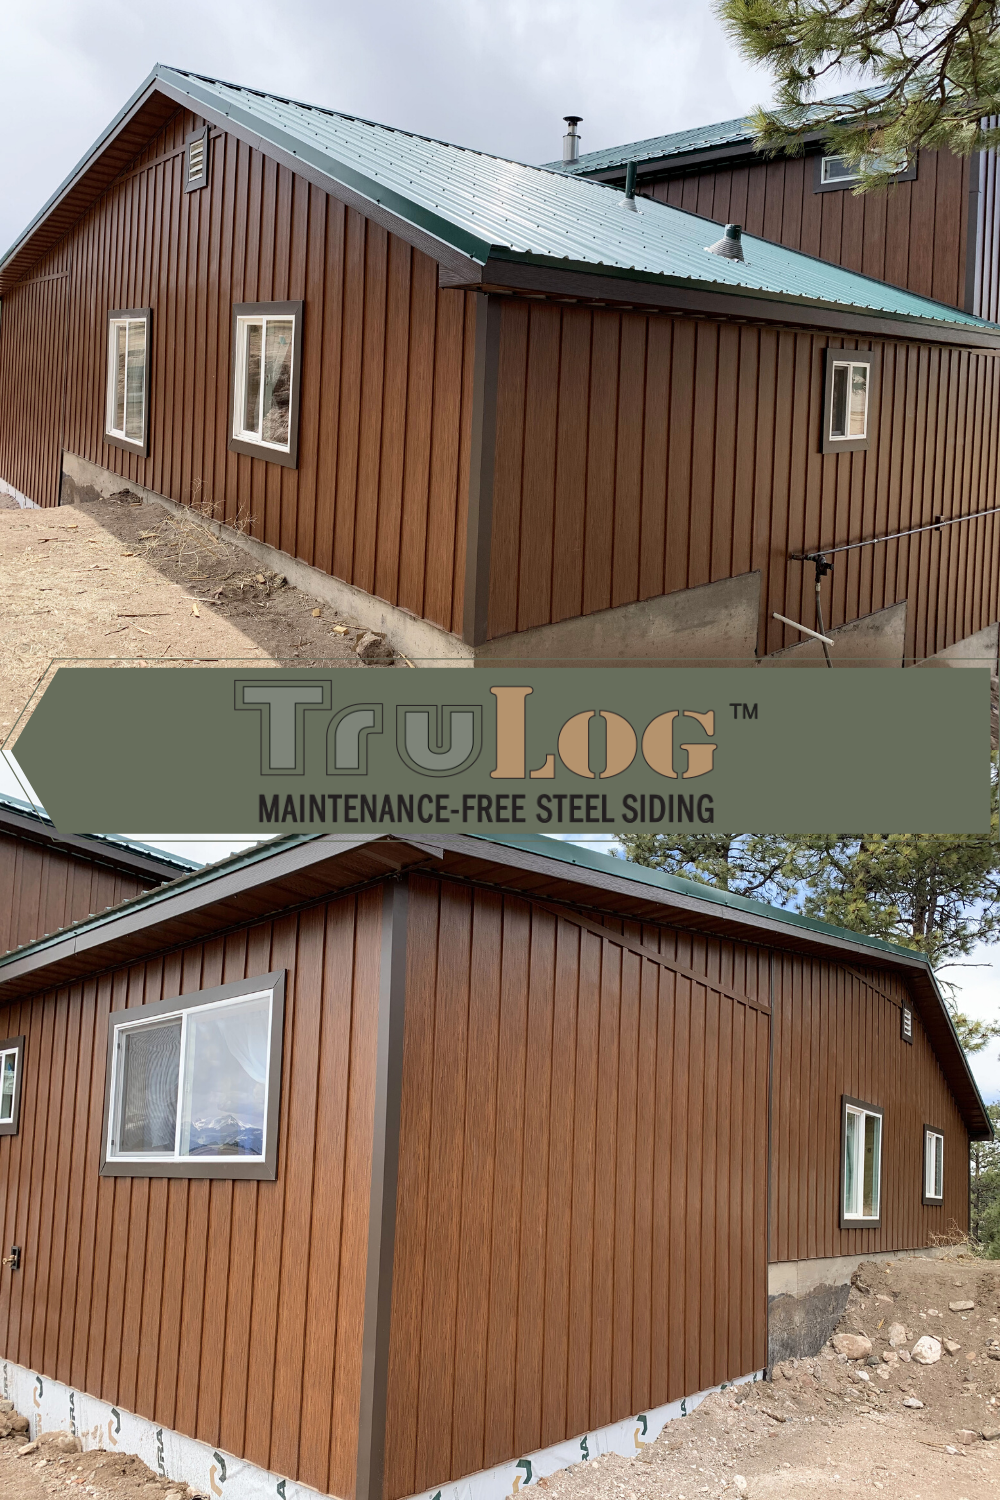 Trulog Steel Board And Batten Siding In 2020 Steel Siding Paint Your House Siding